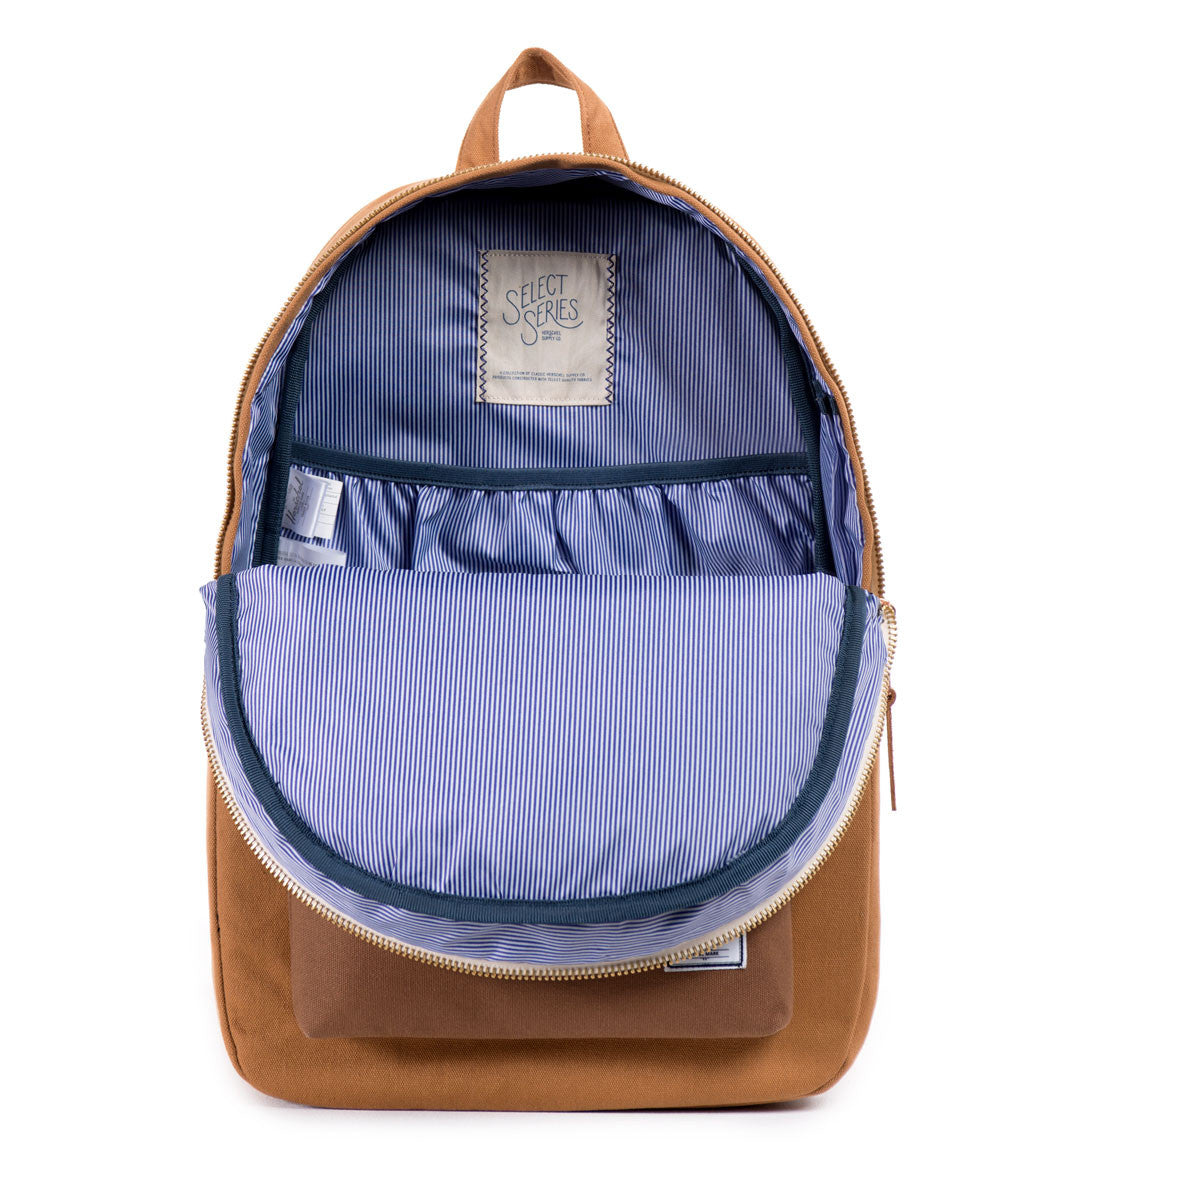 Herschel Supply Co.: Settlement Backpack - Caramel Coated Cotton Canvas (Select Series) open